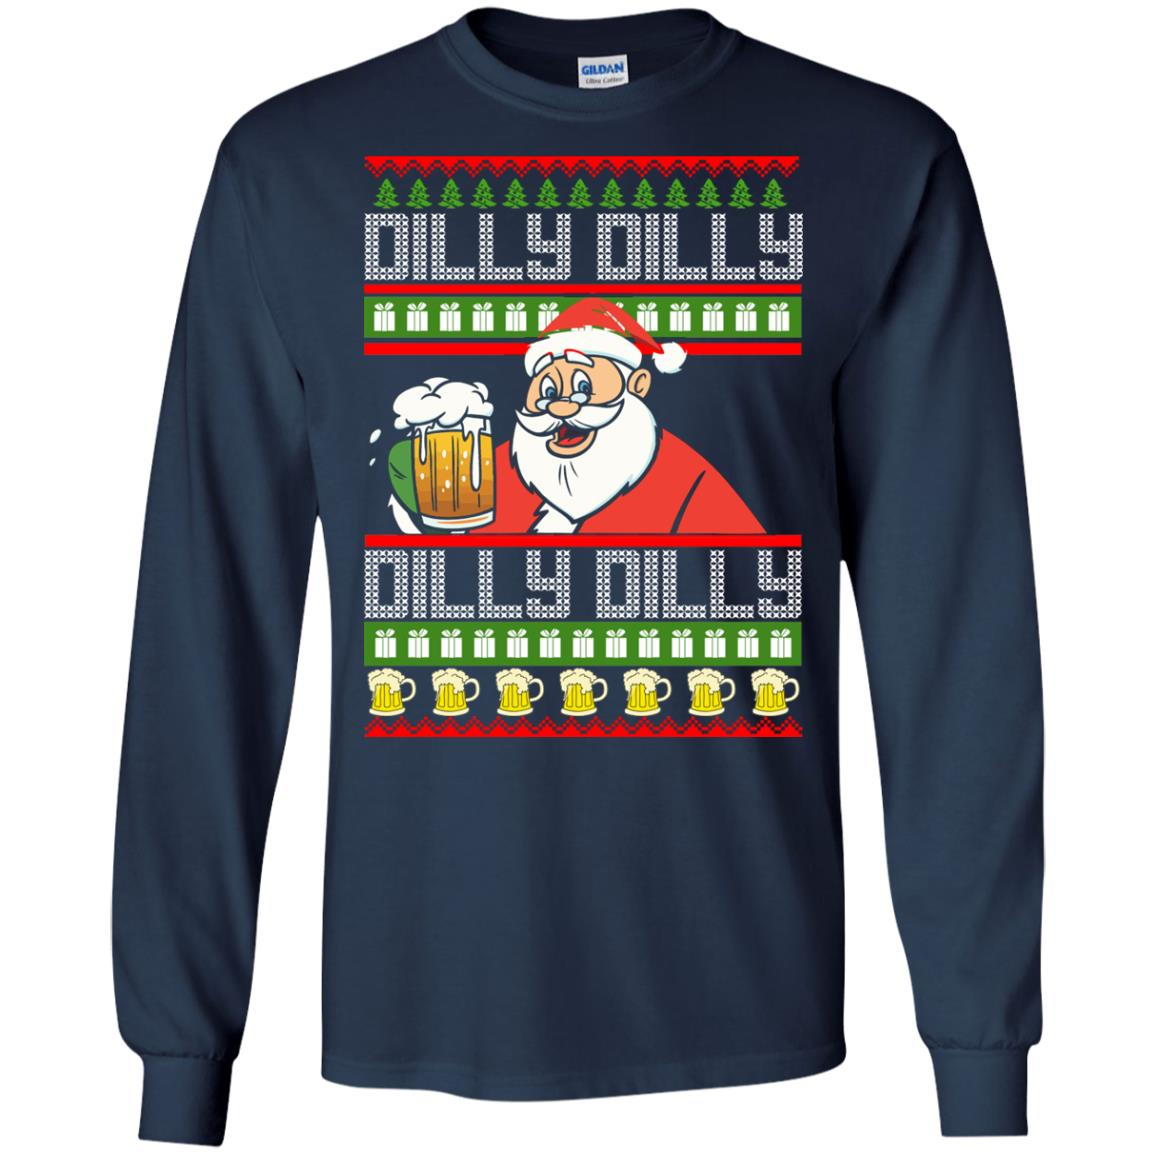 image 4184 - Dilly Dilly Christmas Sweater, Shirt, Hoodie